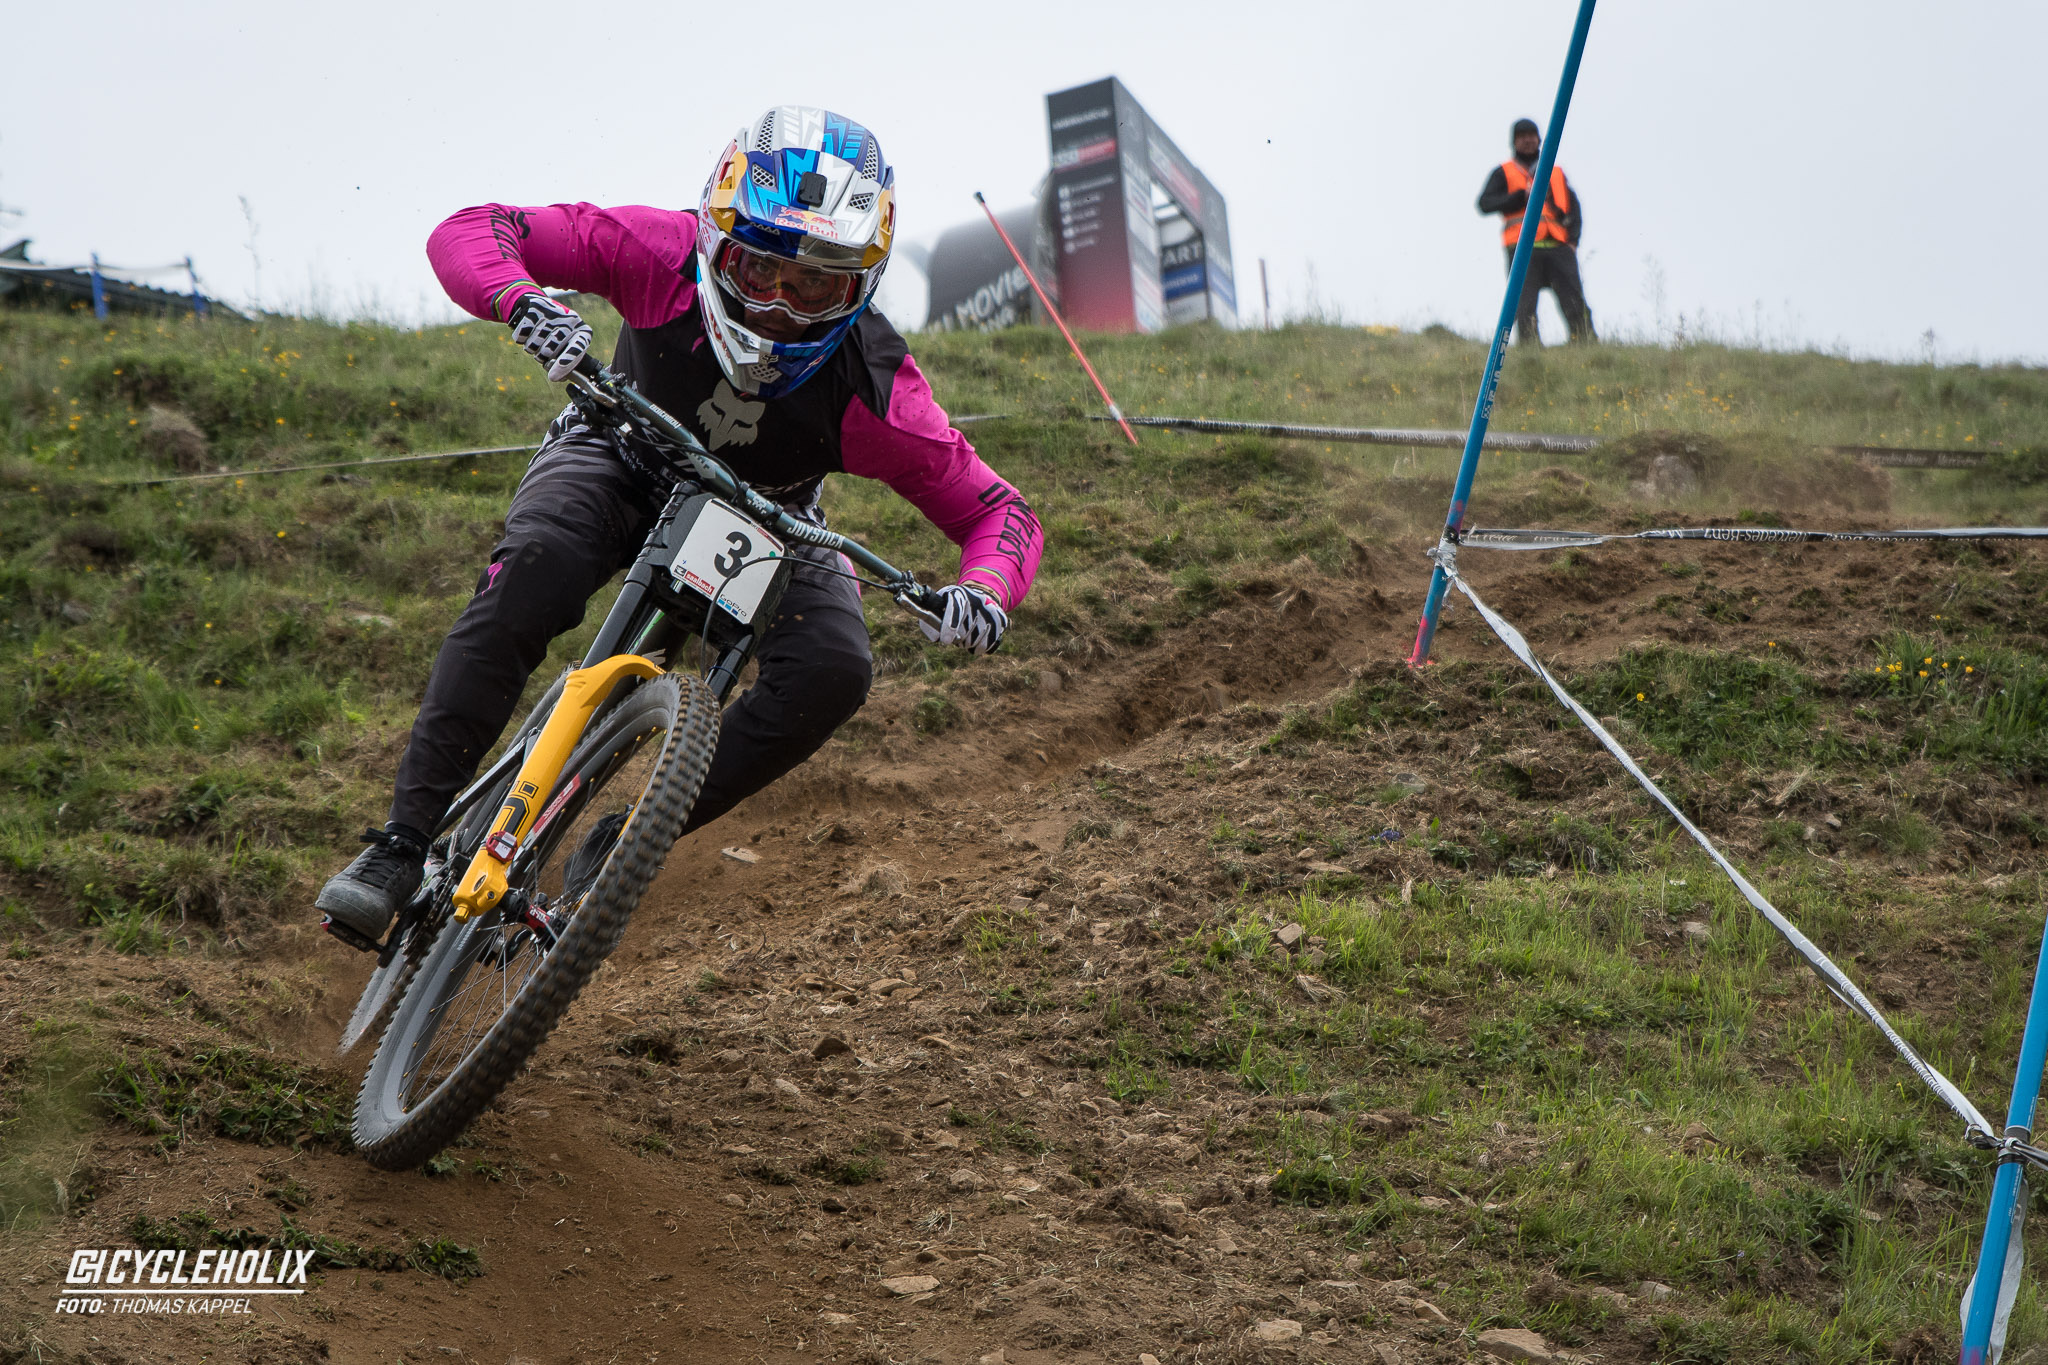 2019 Downhill Worldcup Leogang Finale Action QA 1 Cycleholix